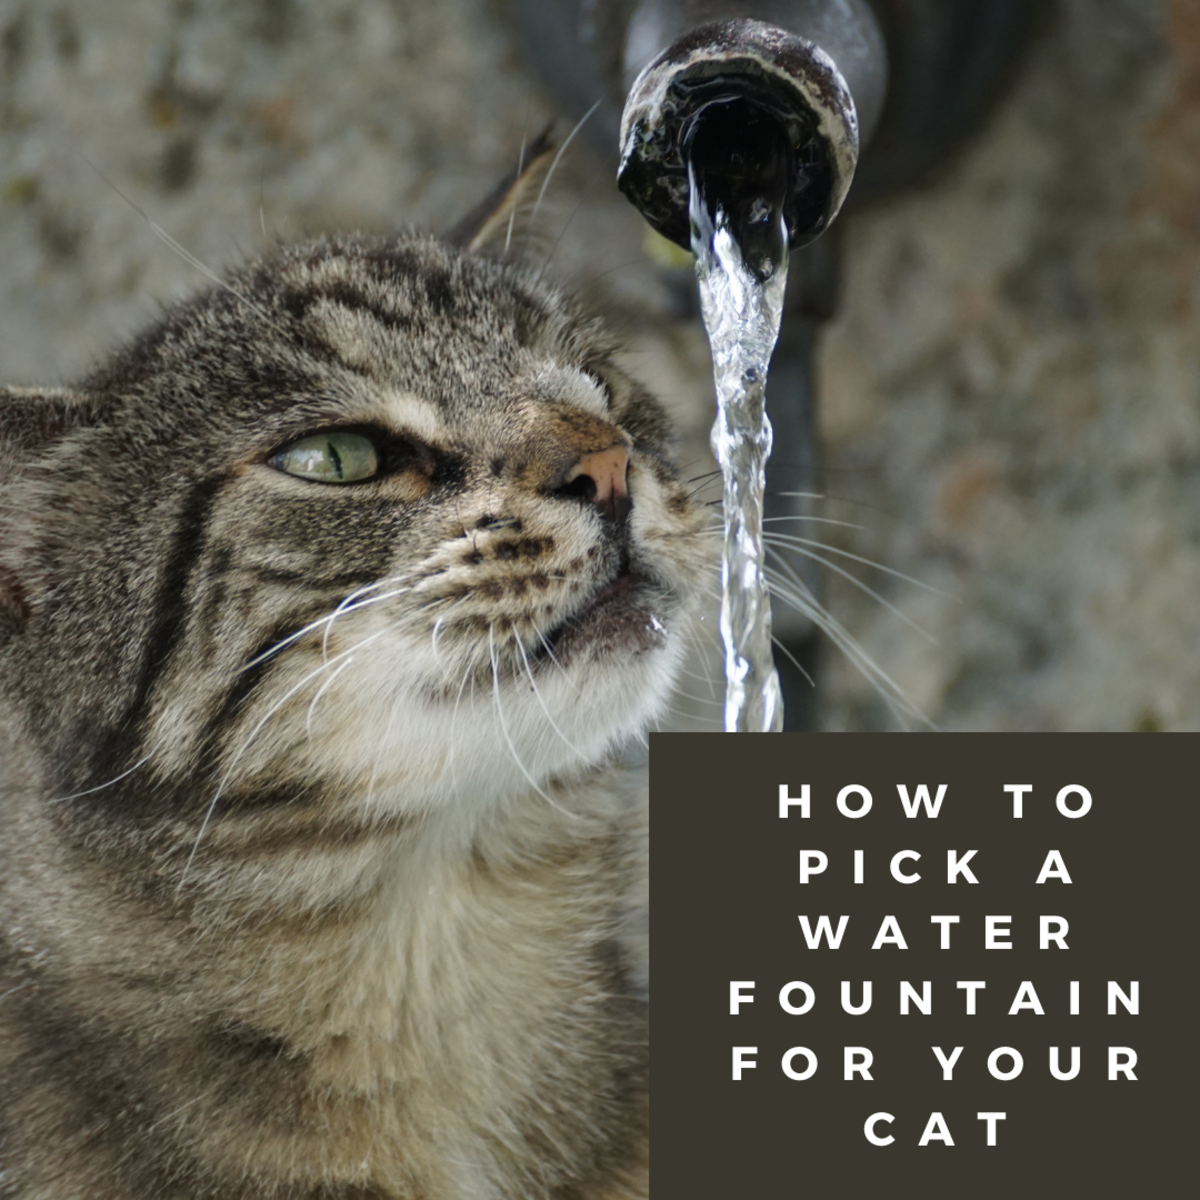 Are you looking for a drinking fountain for your cat?